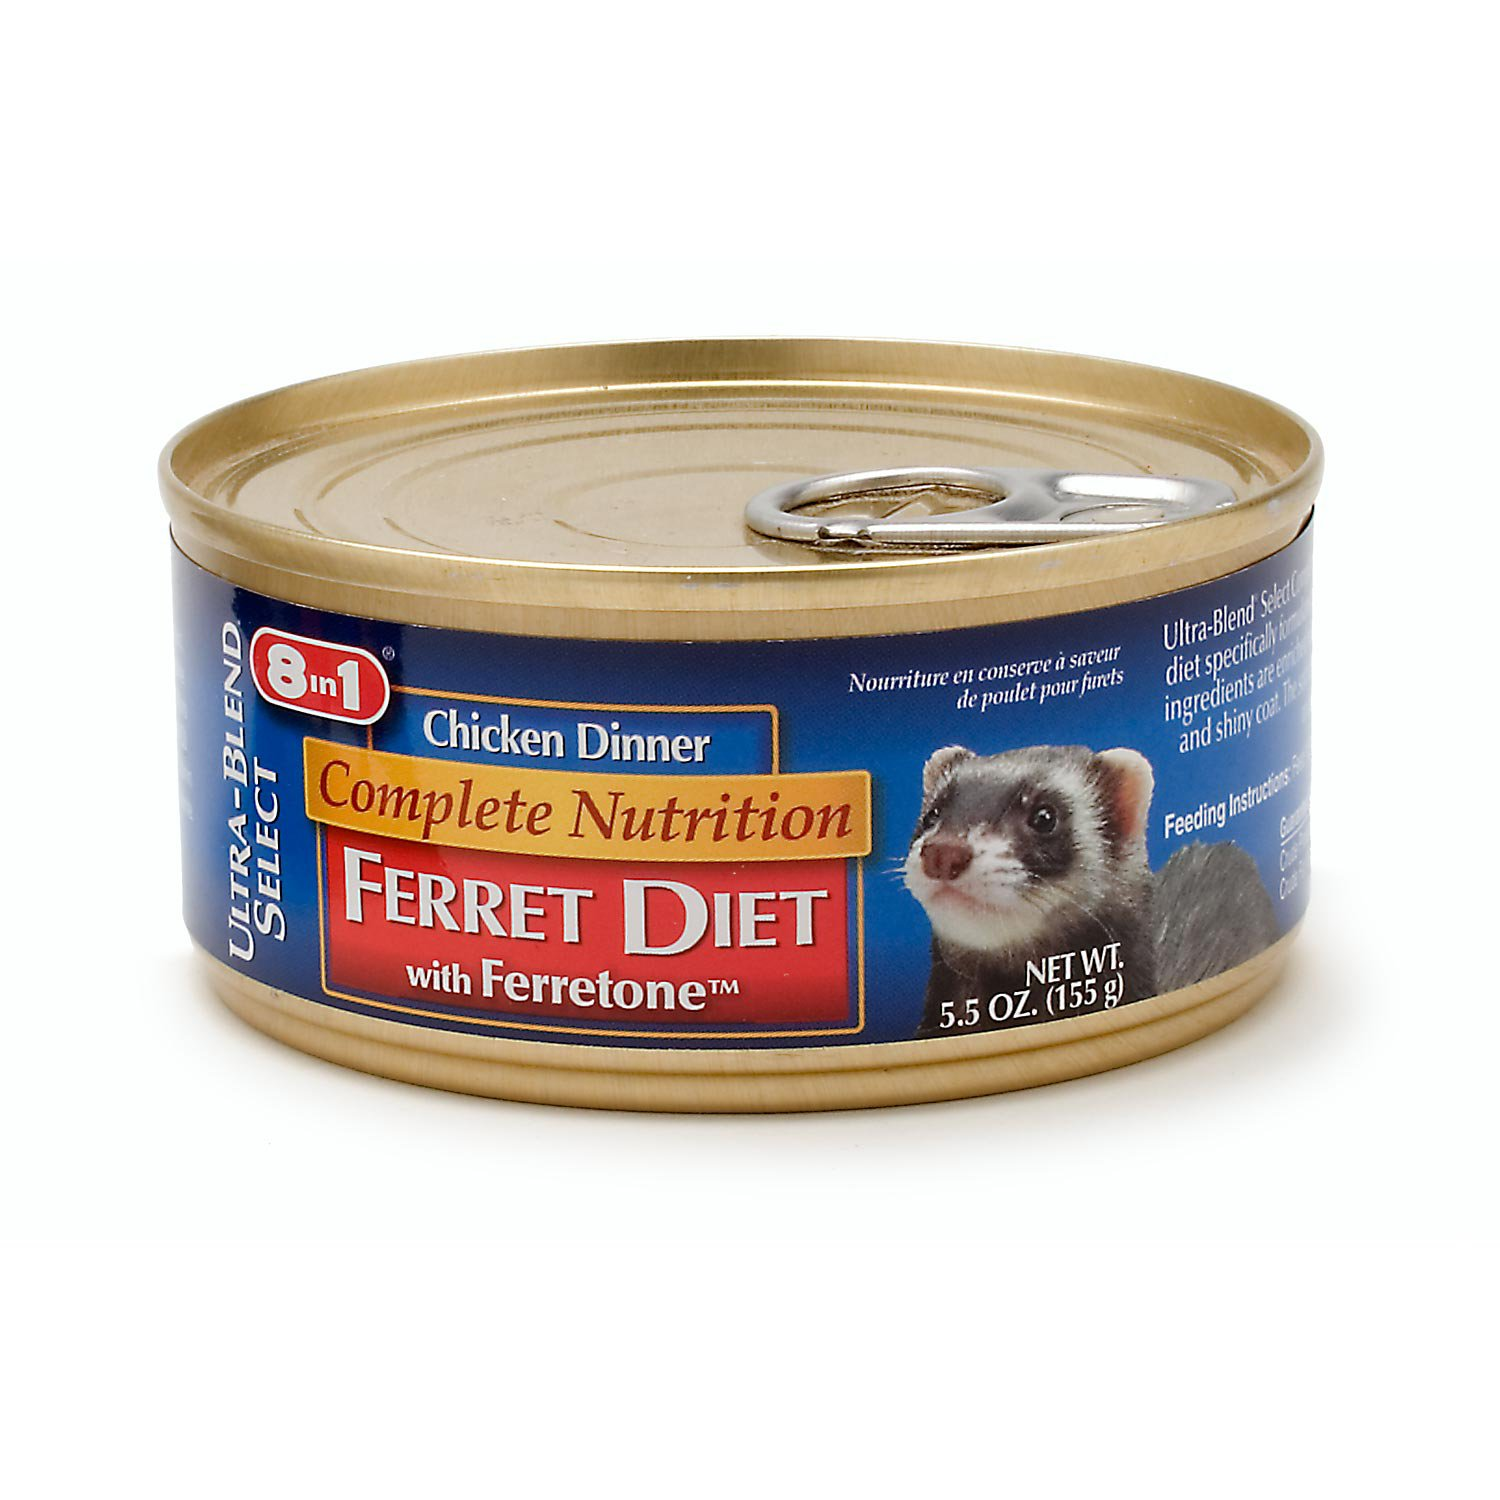 8 in 1 Complete Nutrition Ferret Diet